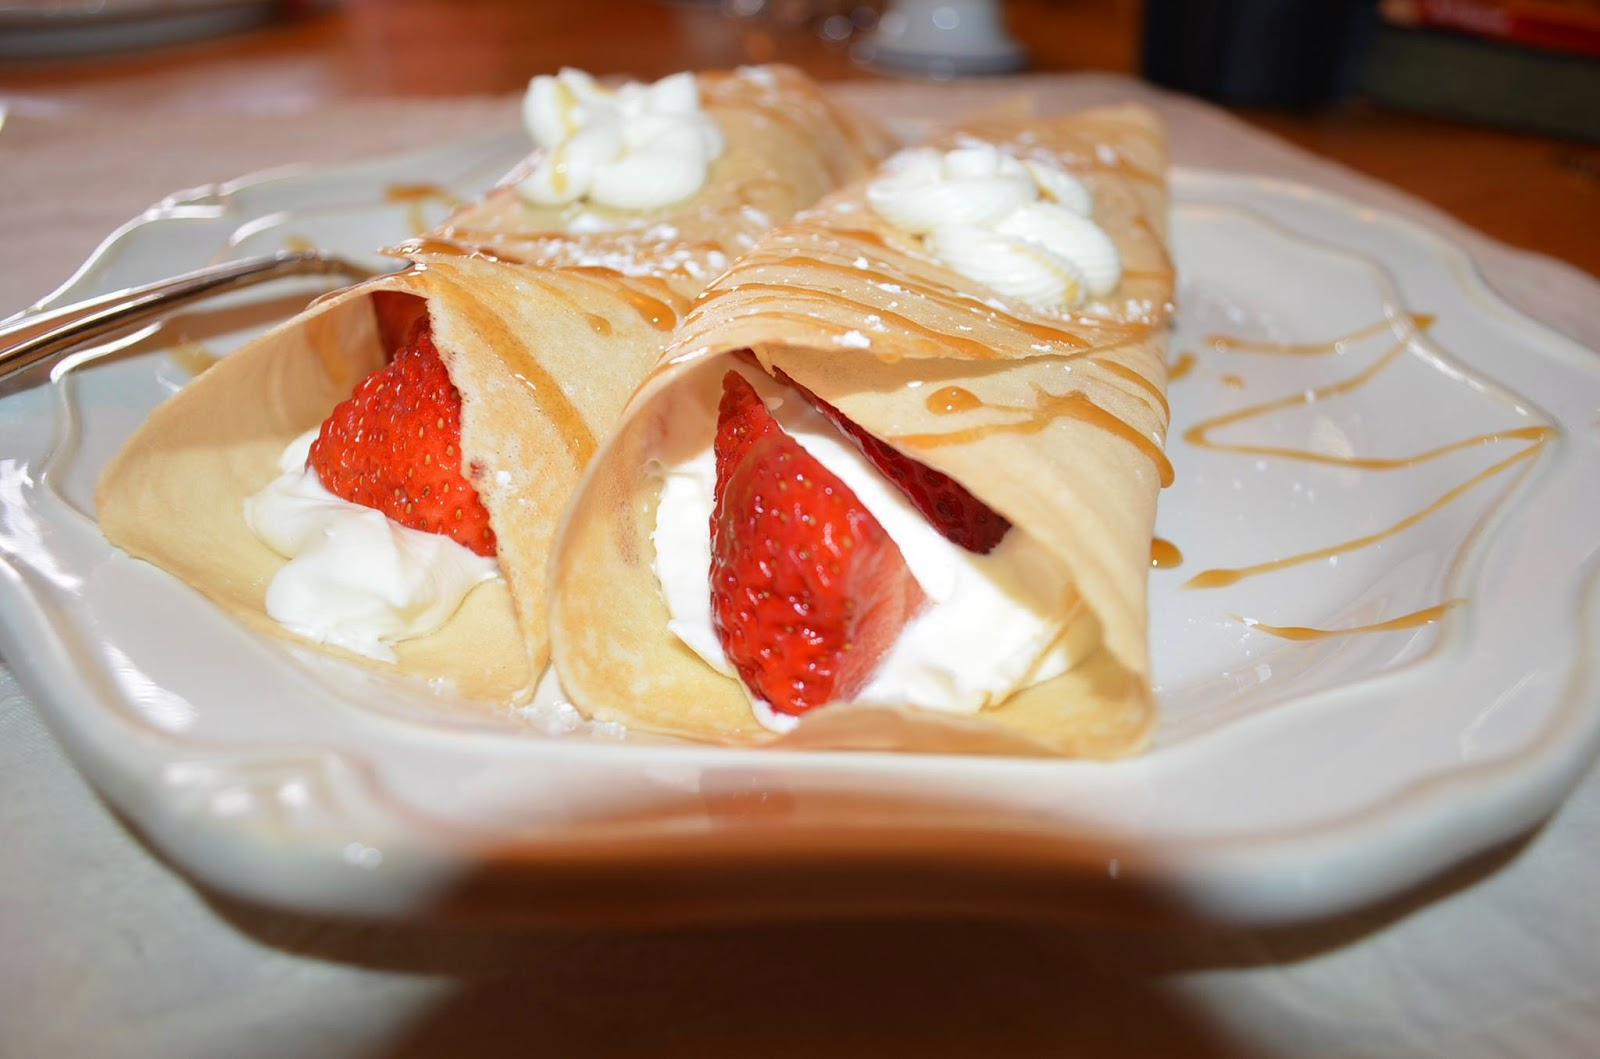 Strawberry Crepes on the plate with caramel sauce